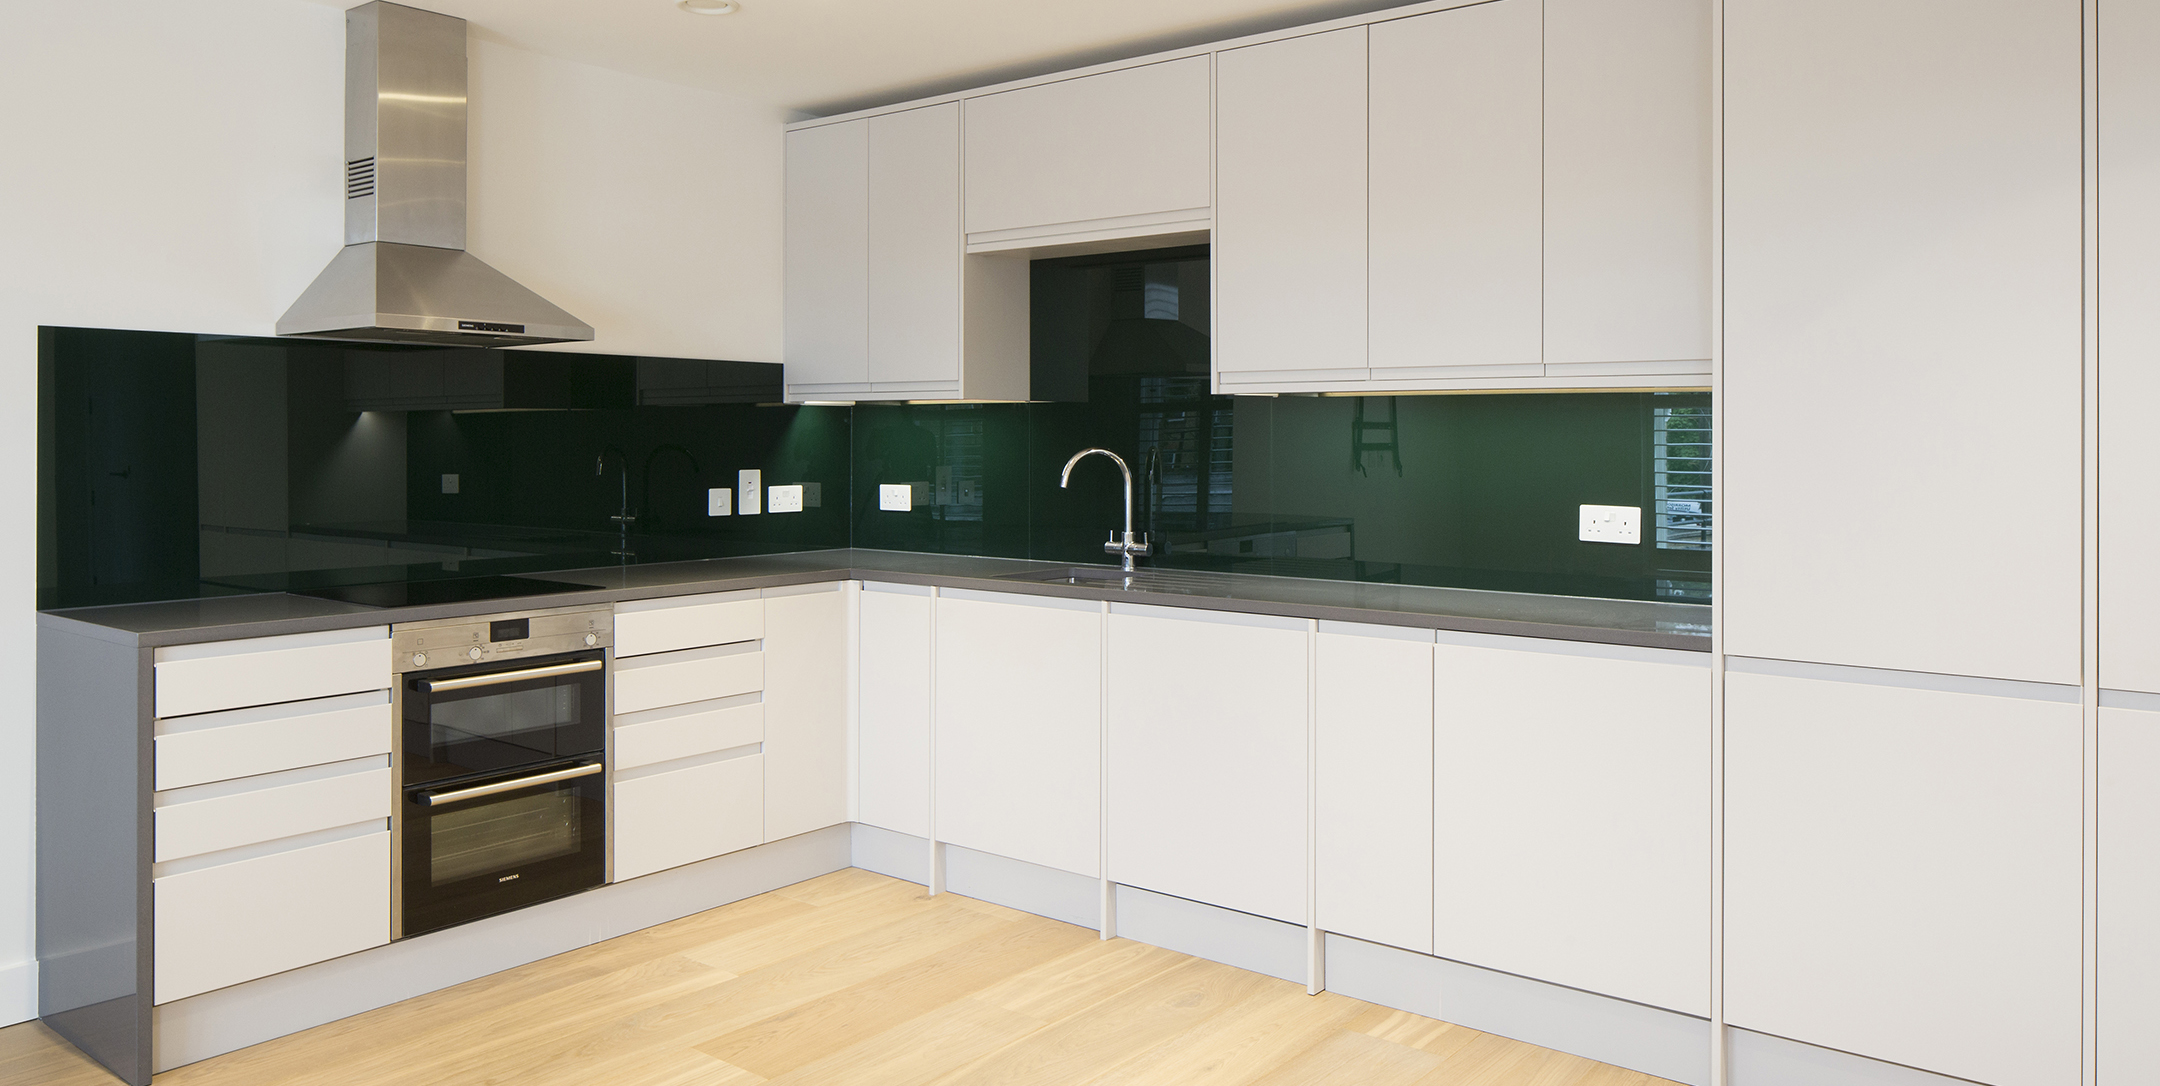 Home Refurbishments Clapham SW4 - Ashville Inc